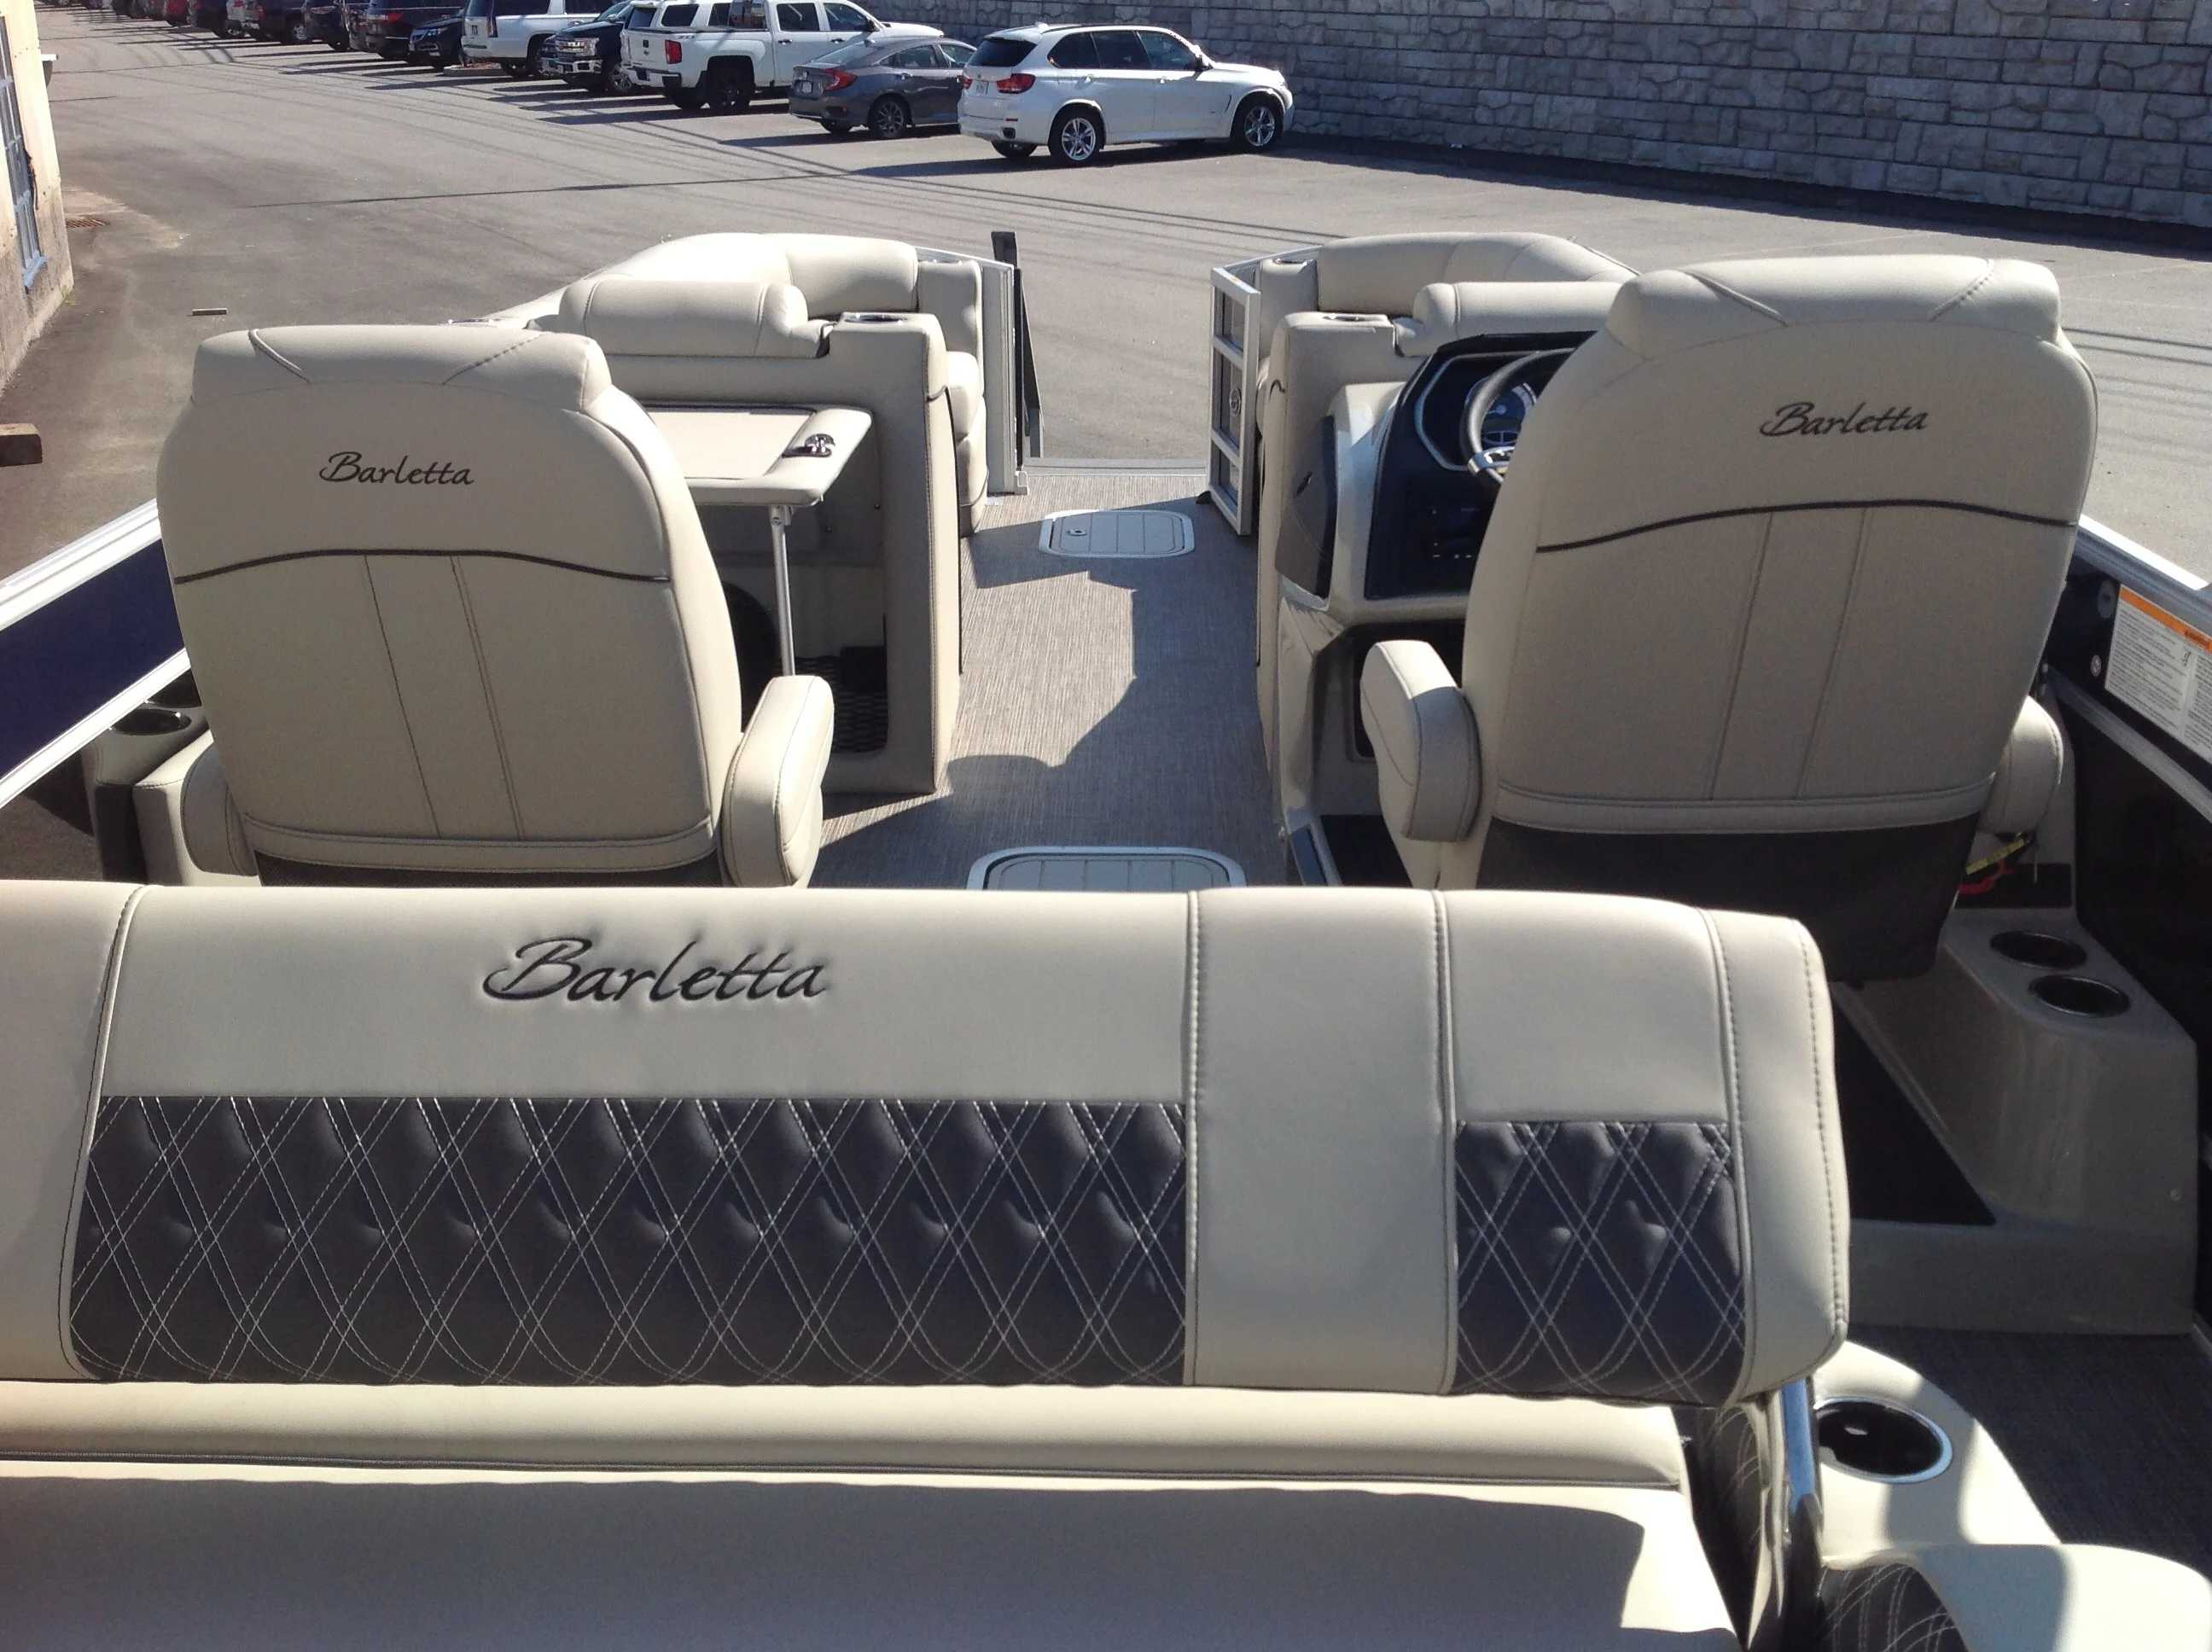 2021 Barletta boat for sale, model of the boat is L25UC & Image # 15 of 17